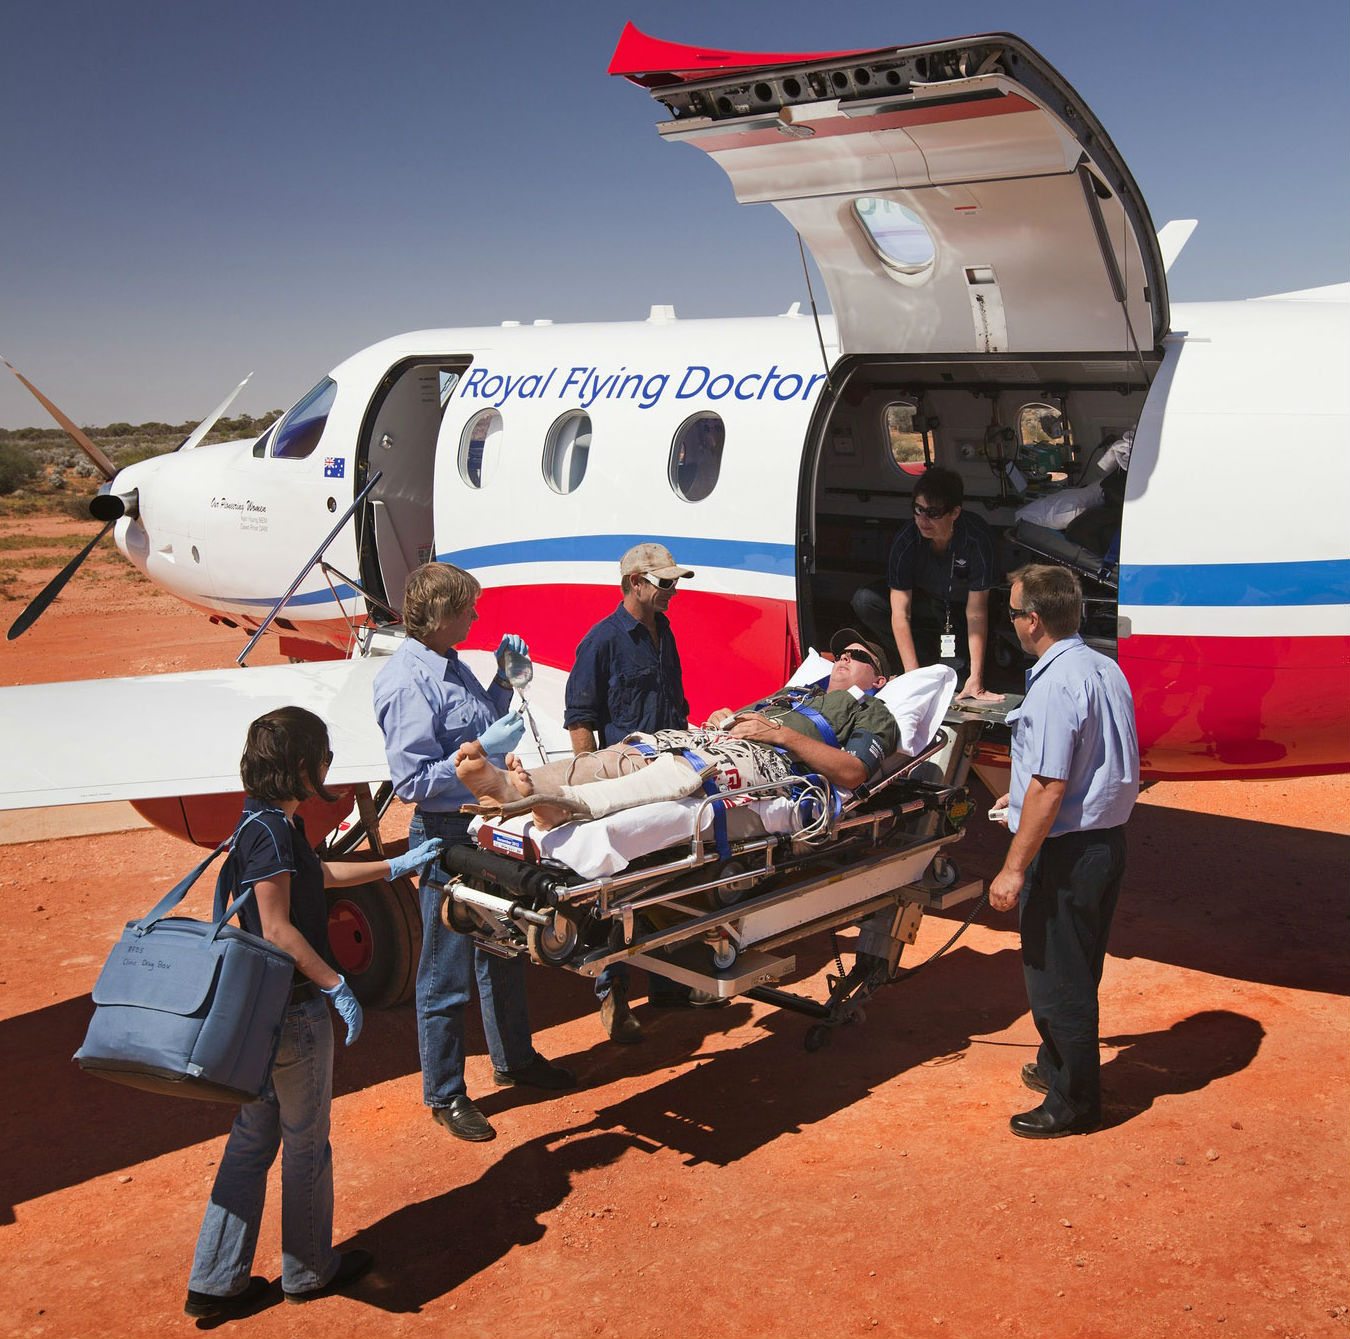 Royal Flying Doctor Service personnel load a patient into an aircraft.